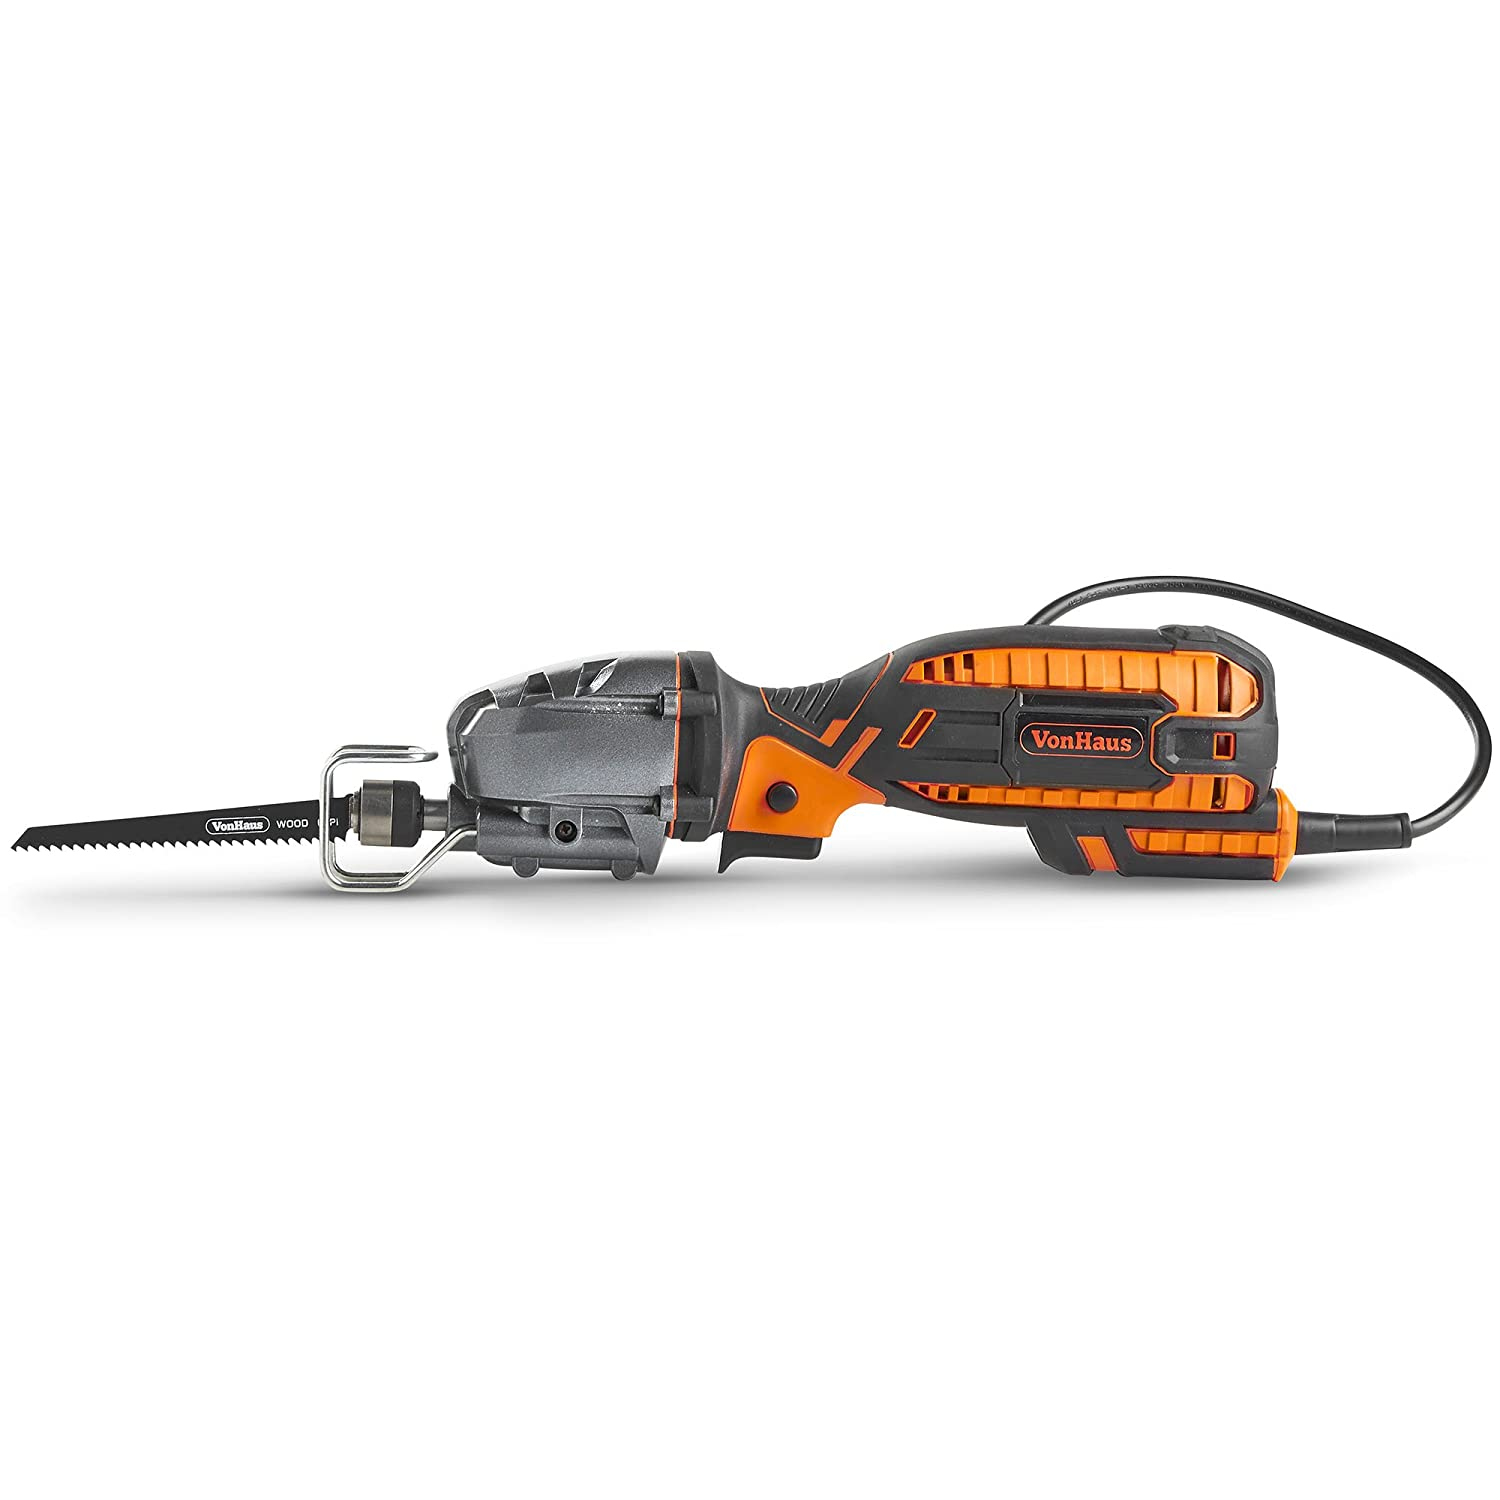 VonHaus Compact Reciprocating Saw Kit